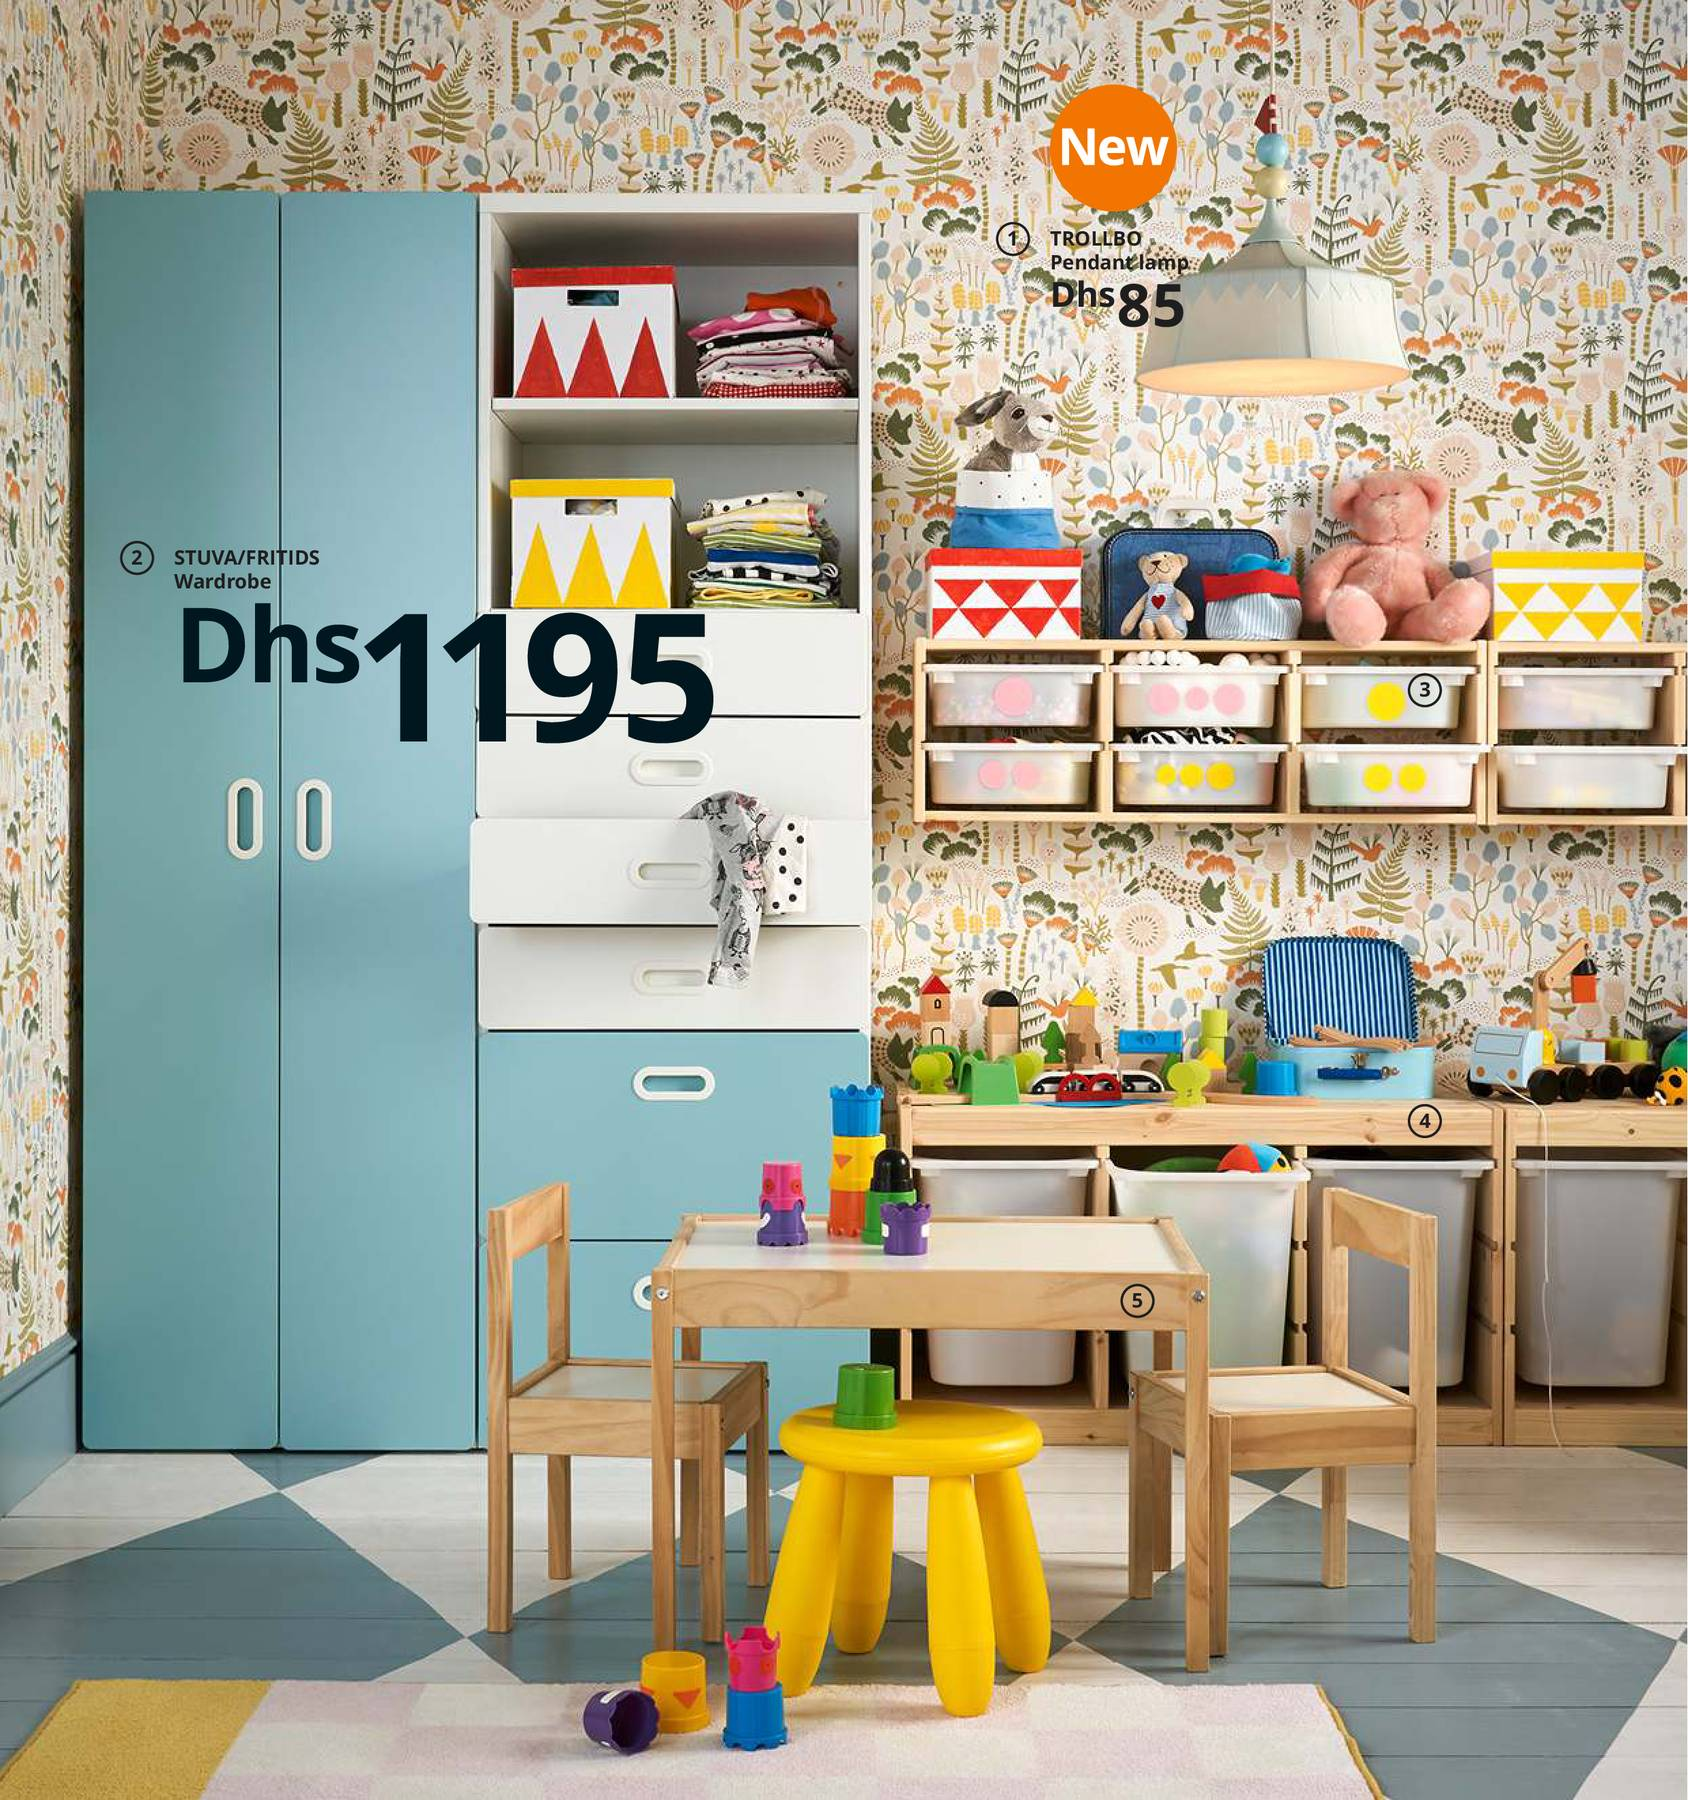 Great Offers from IKEA until 31st July - IKEA Offers